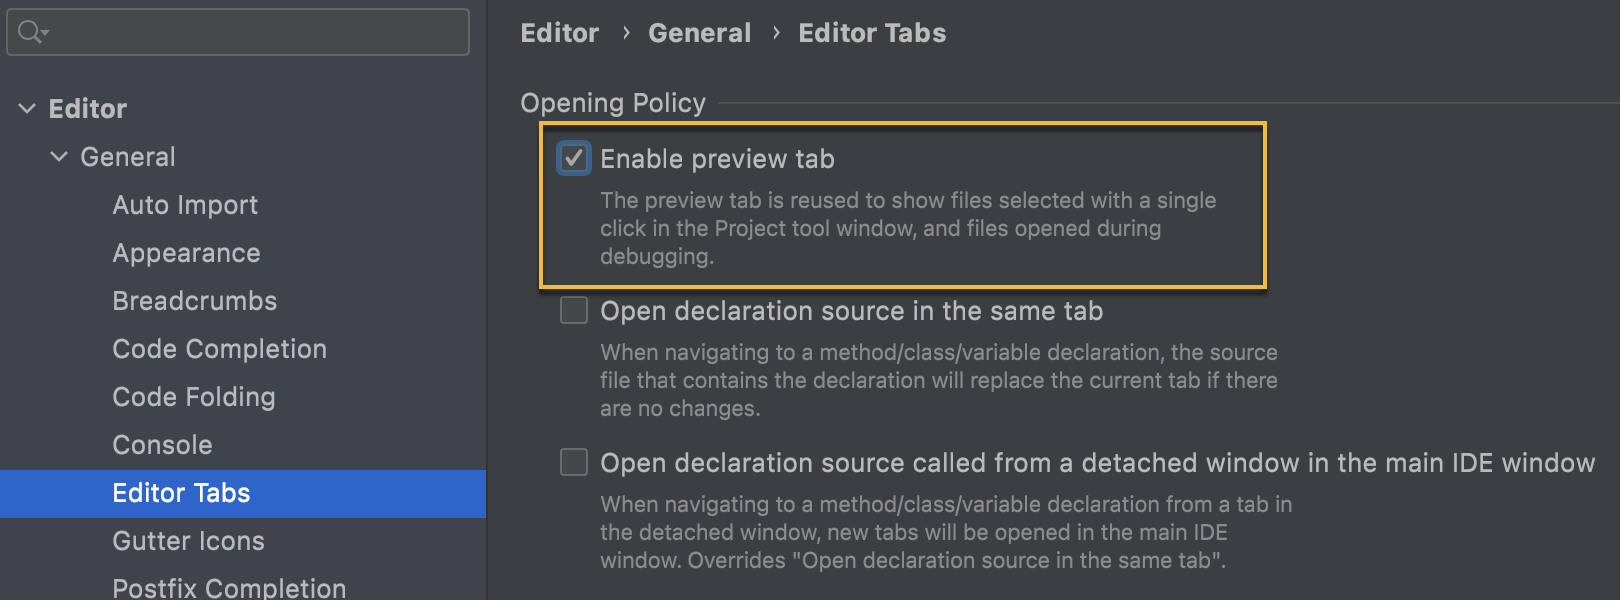 Preview tabs settings